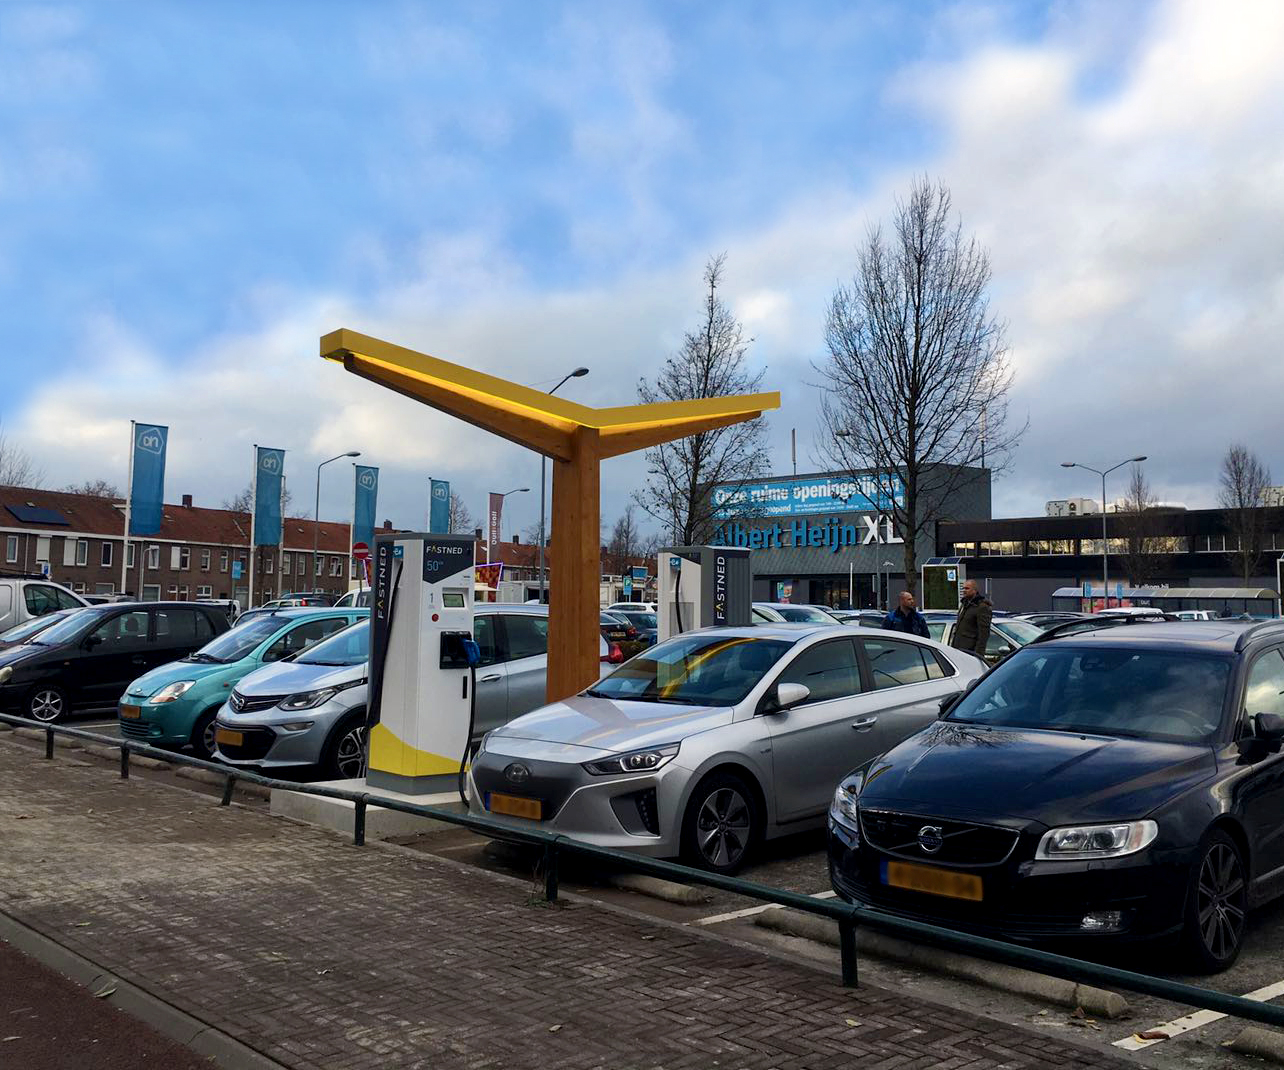 297414 fastned%20fast%20charging%20station super%20market%20model albert%20heijn 2 1a4917 original 1544090709